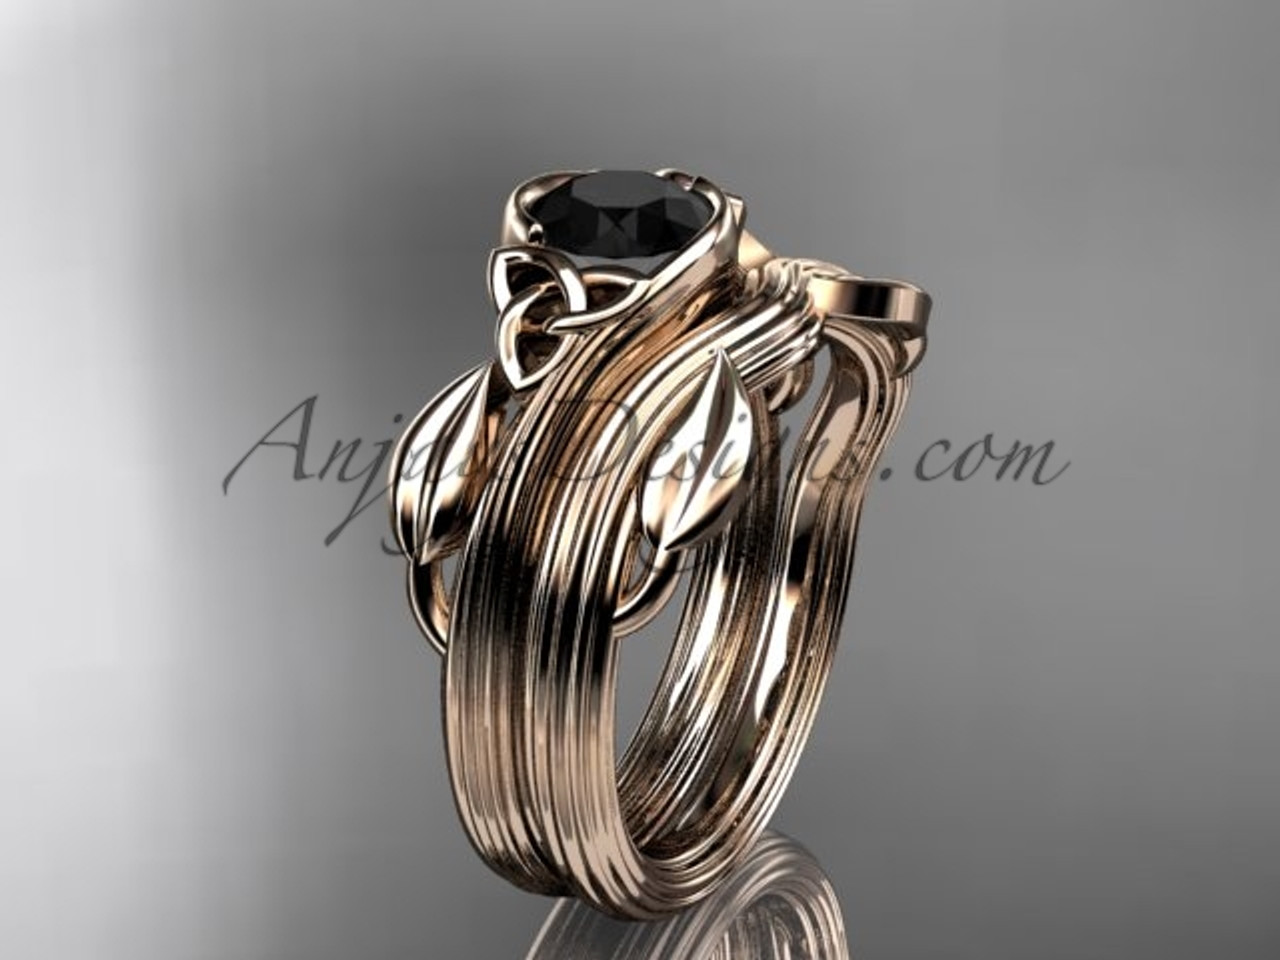 brass grande everyday collections all products jewelry leaf women silver sterling rings product argentium ring s oct copper